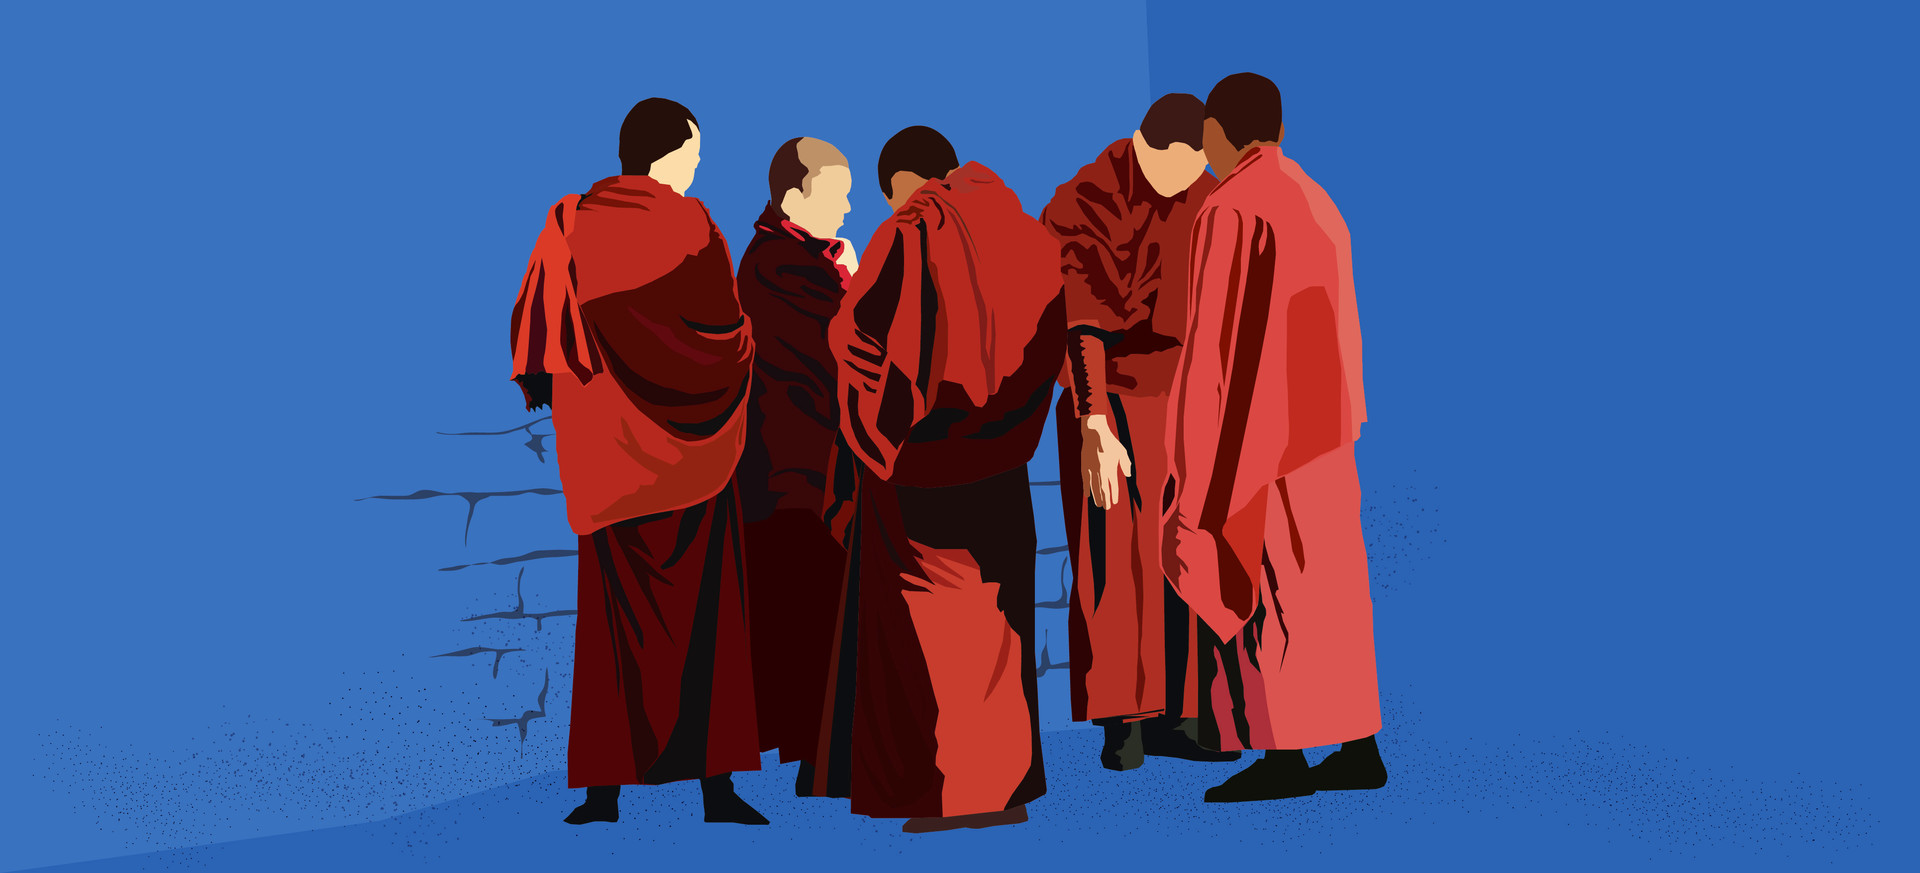 Rajesh sawant monks 01